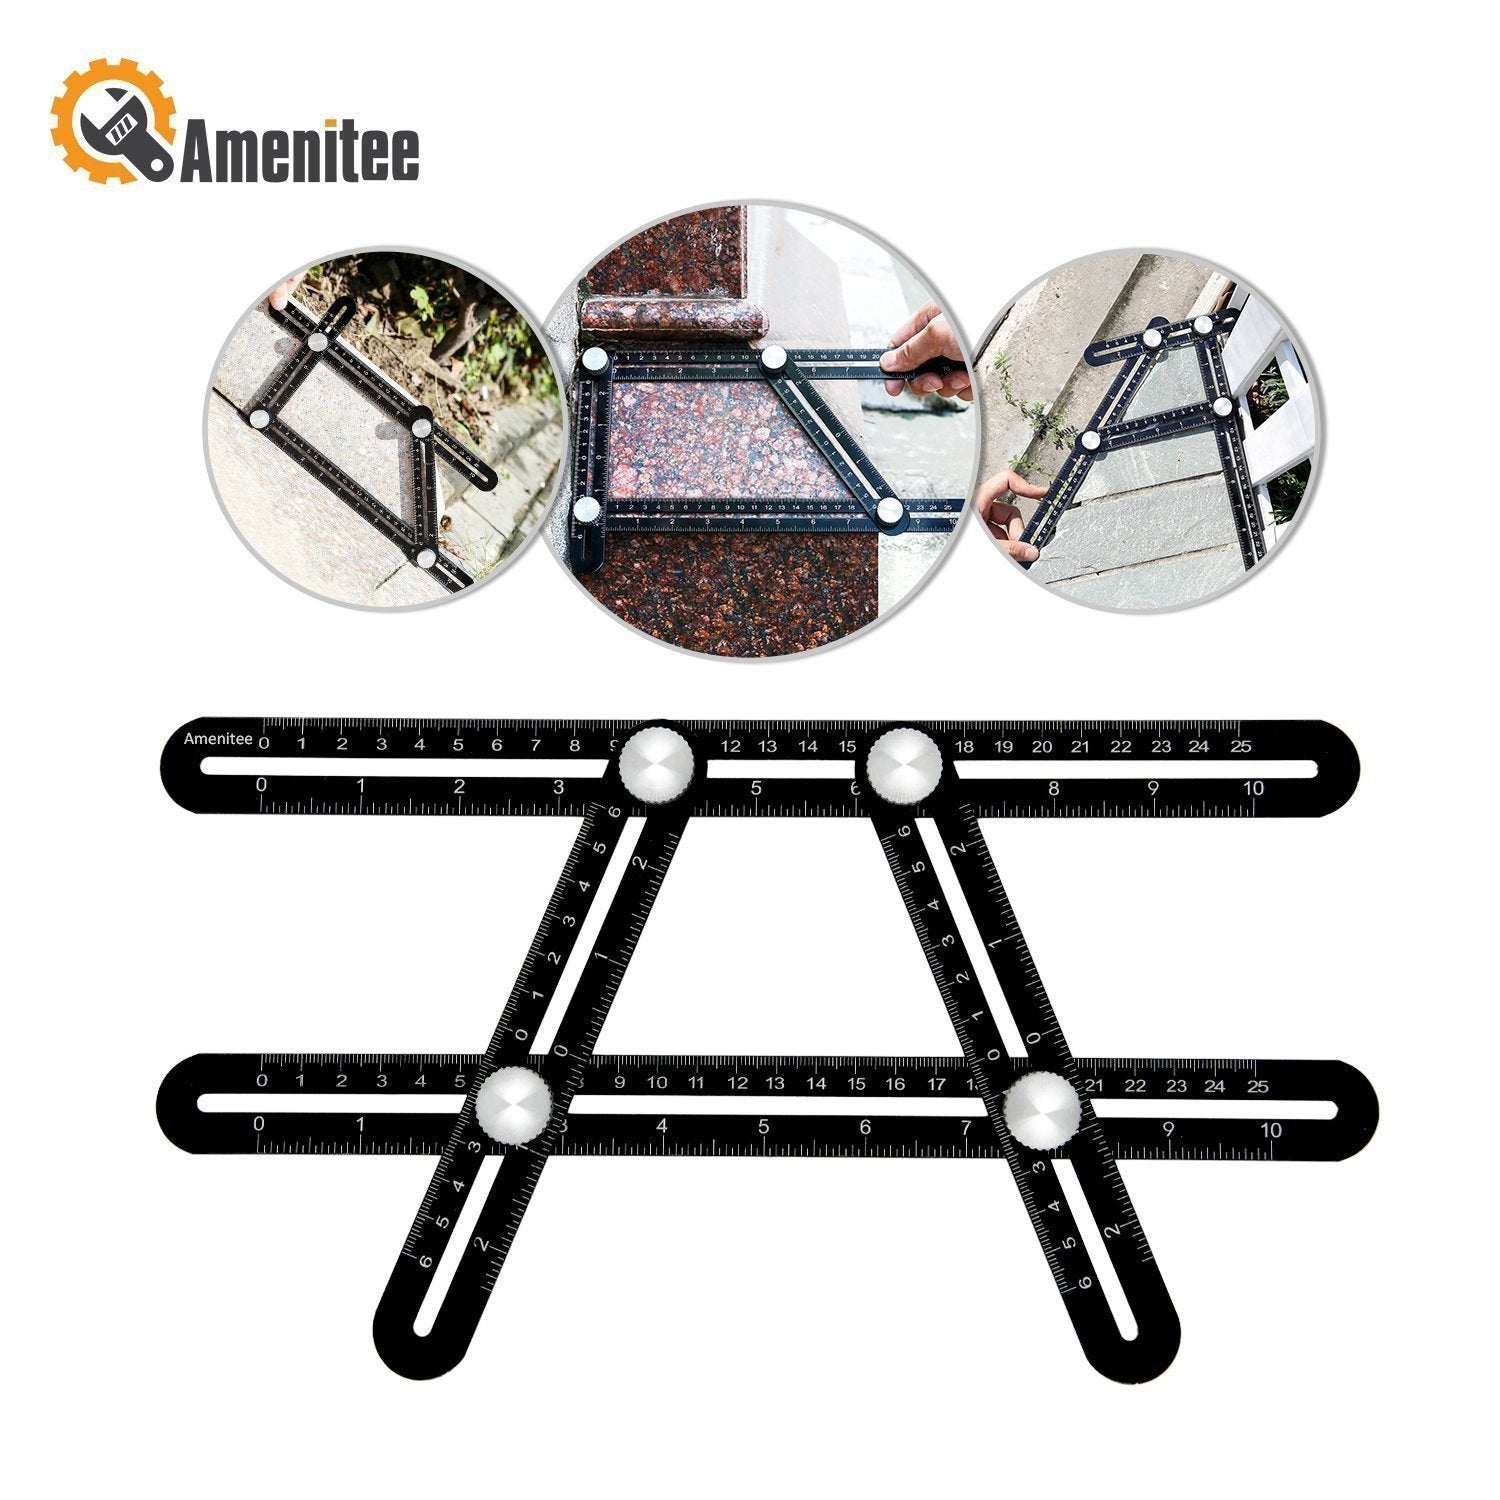 Amenitee Universal Angularizer Ruler--Multi Angle Measuring Tool - mygeniusgift